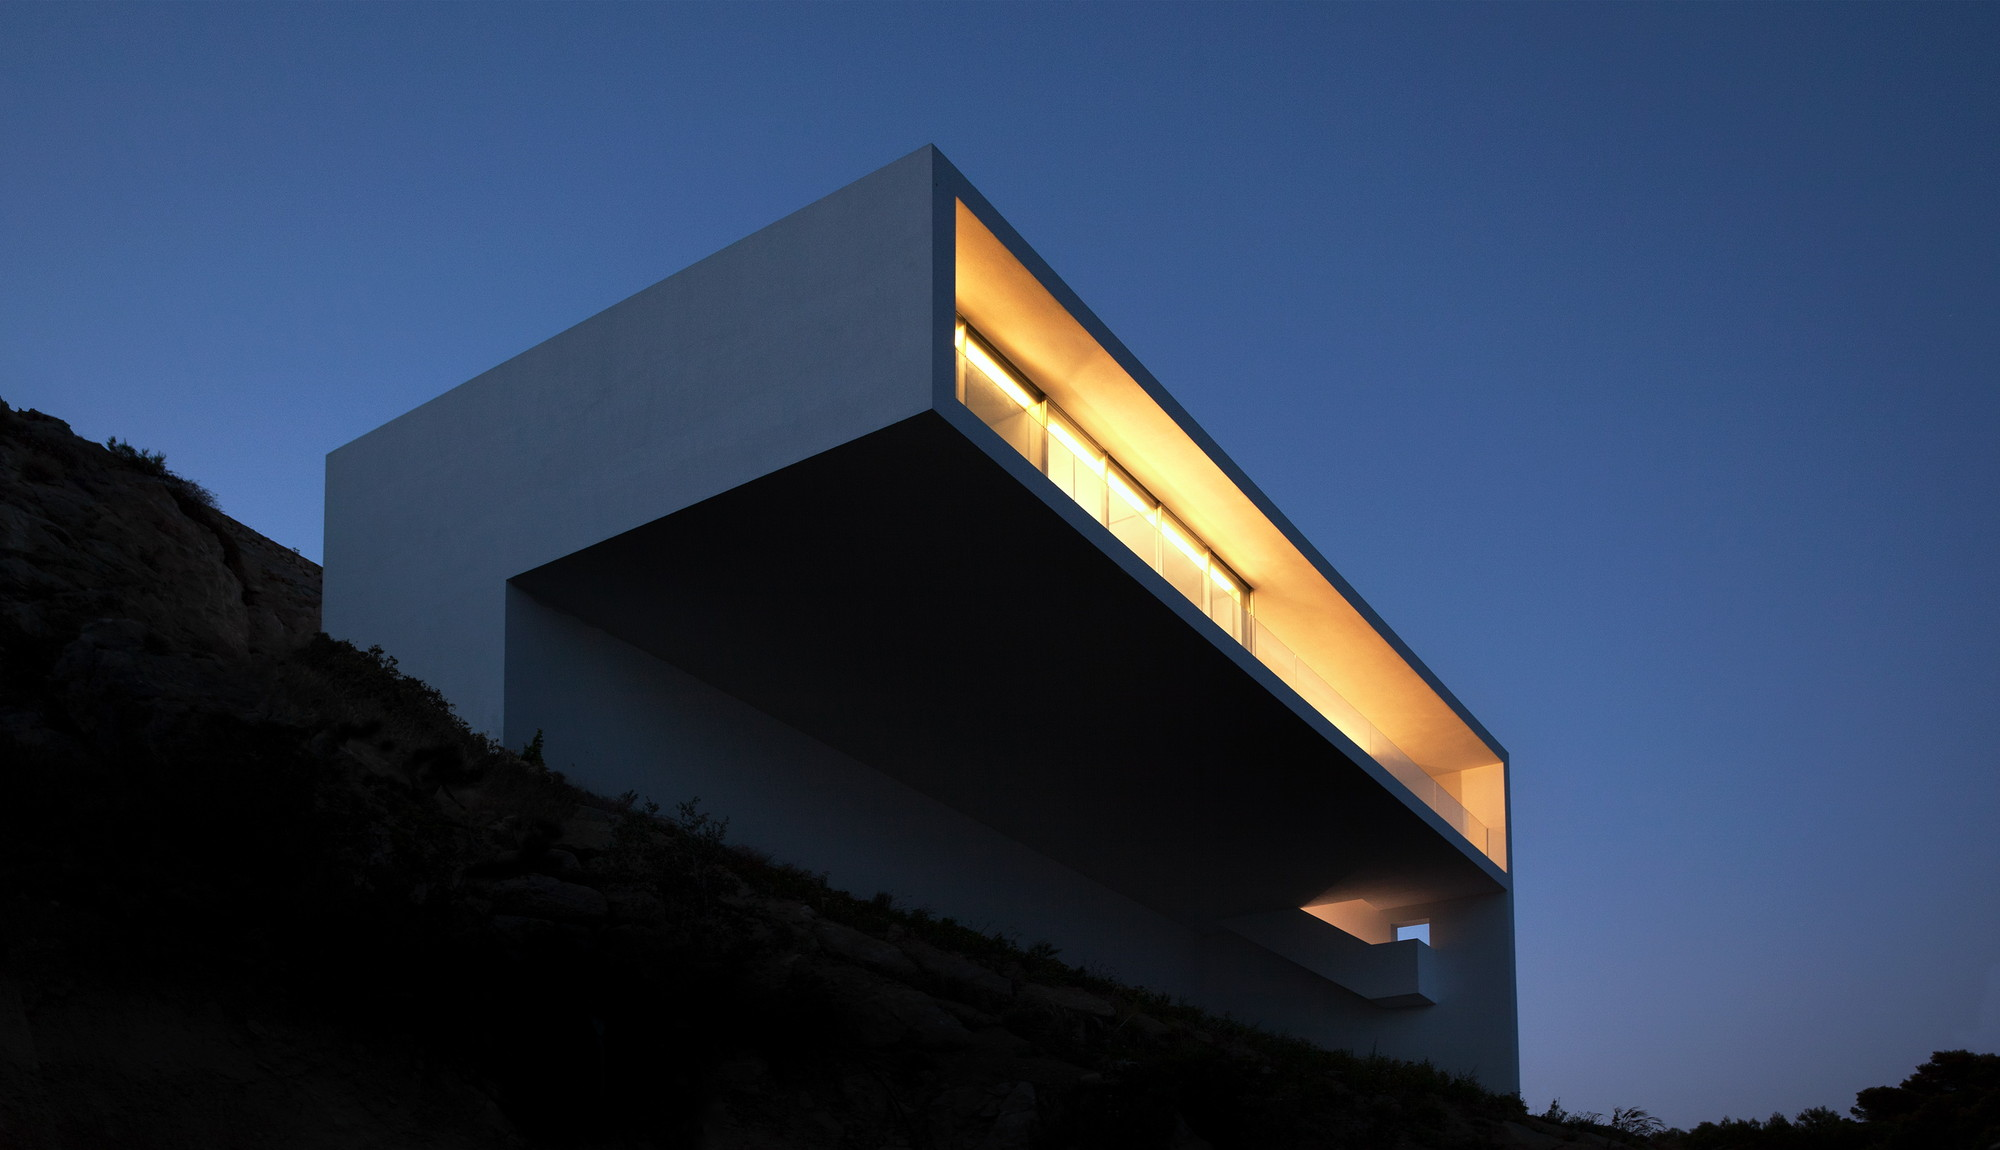 Gallery of house on the cliff fran silvestre arquitectos 5 for Fran silvestre house on the cliff